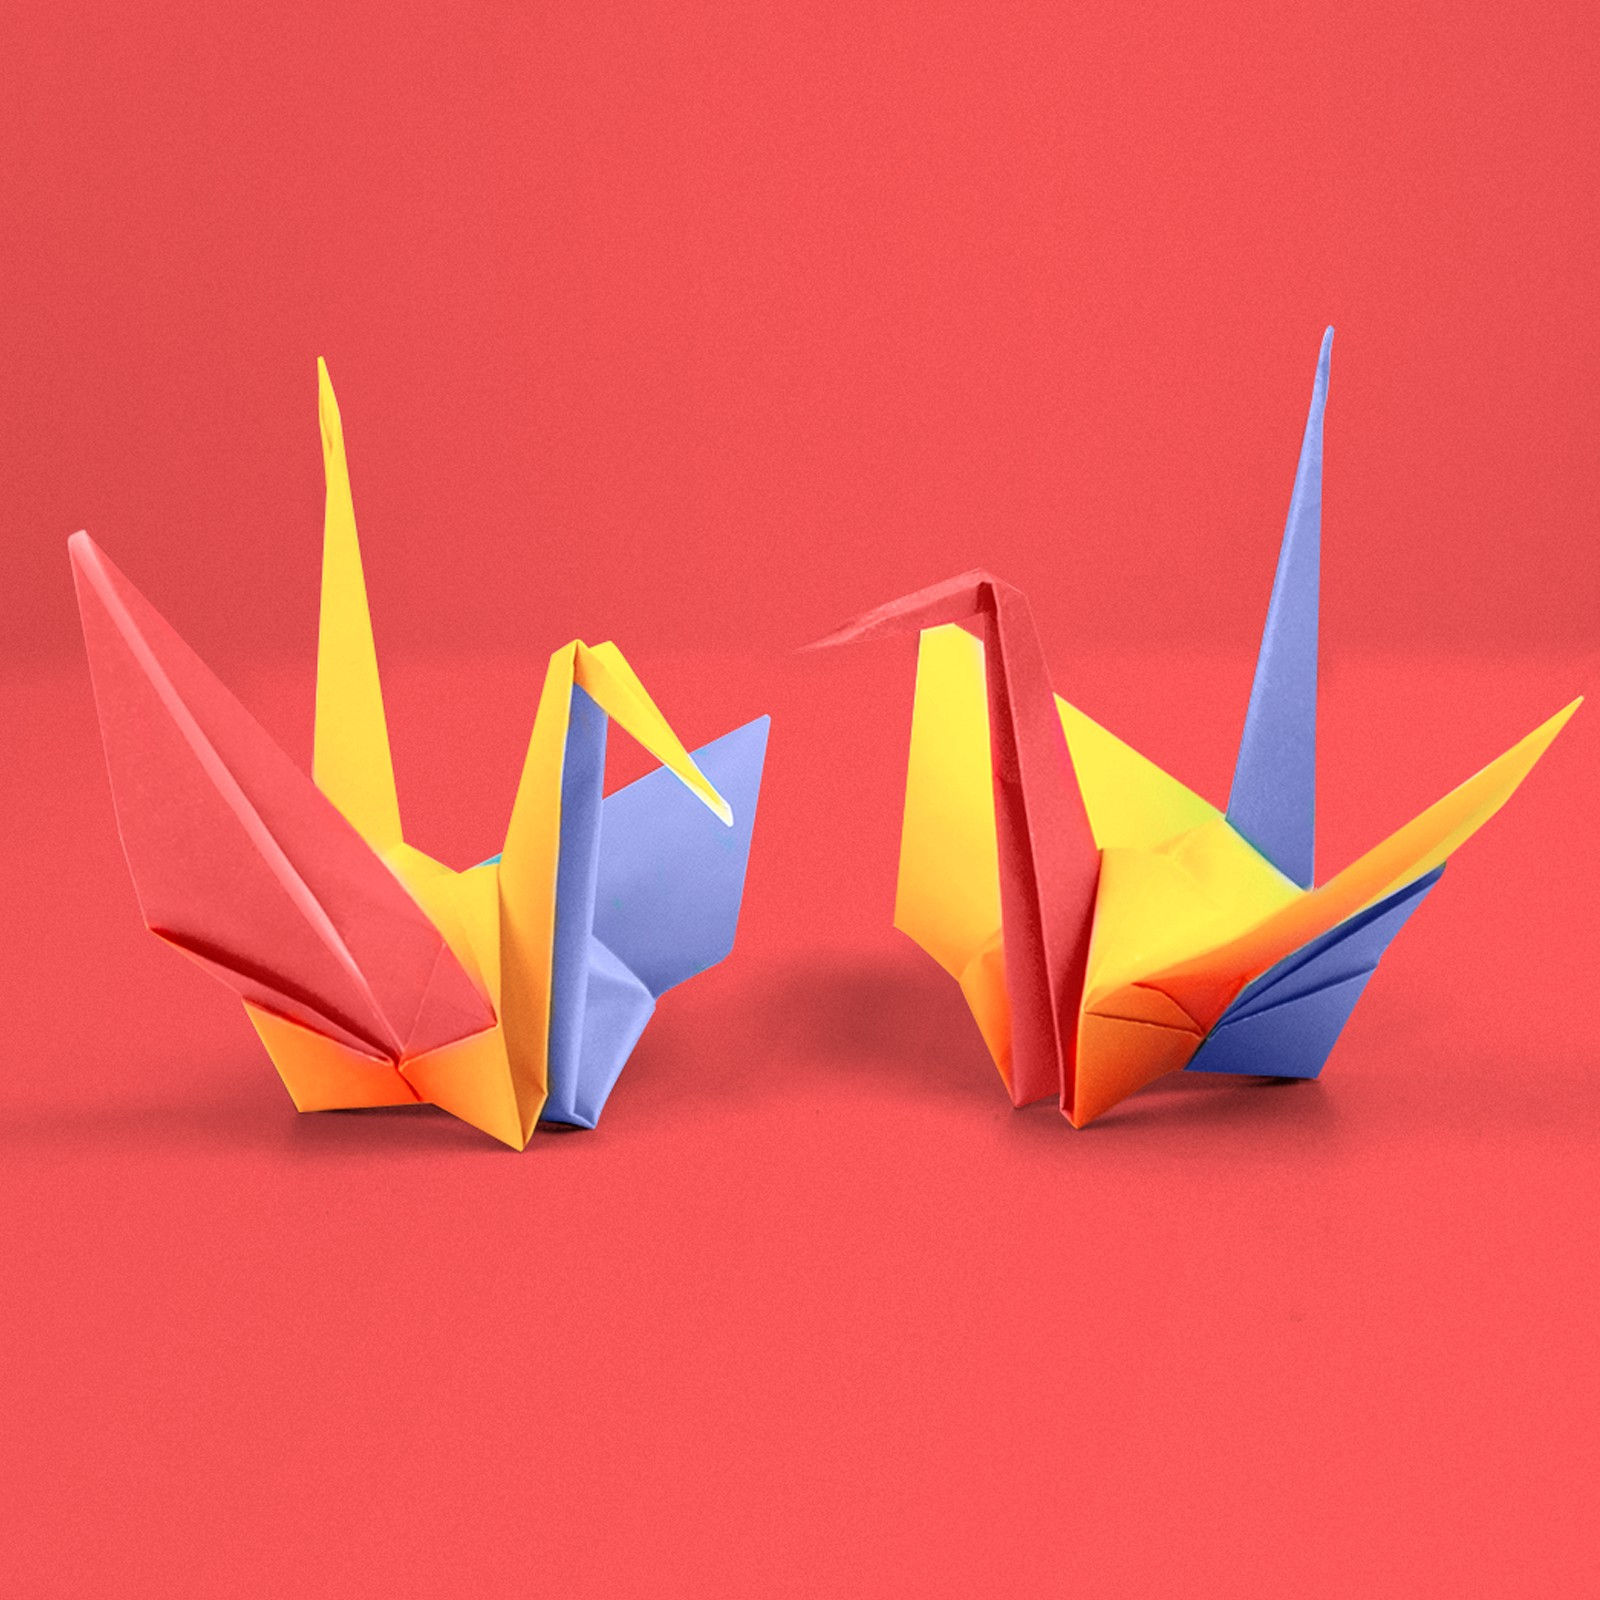 5 Interesting Facts About Origami